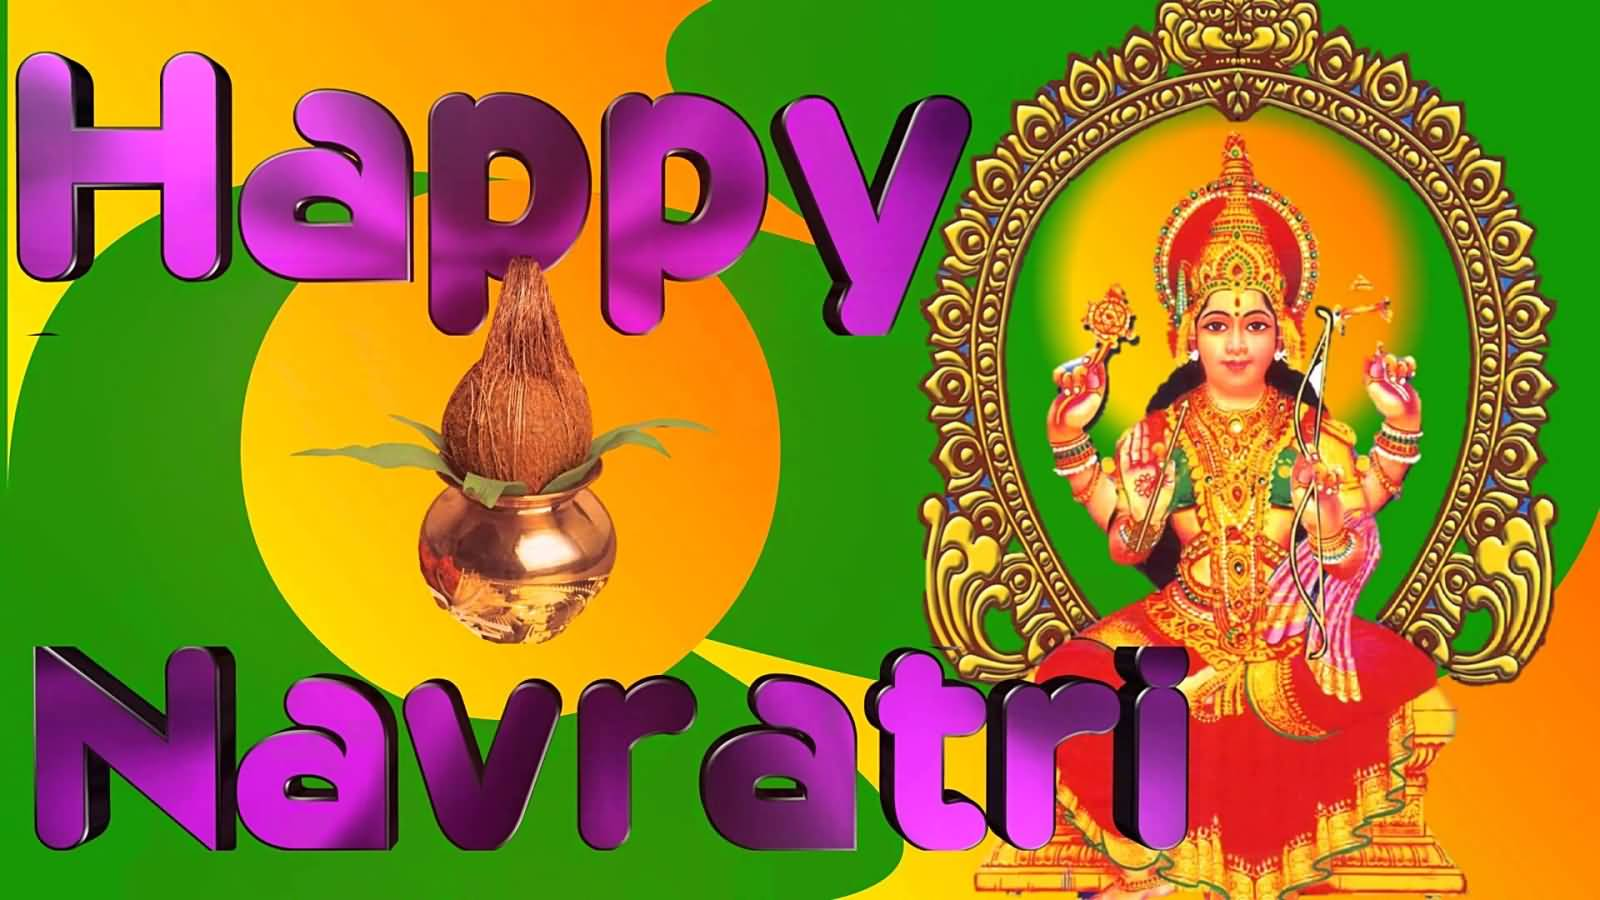 55 best pictures and images of navratri wishes happy navratri greetings 2016 kristyandbryce Choice Image